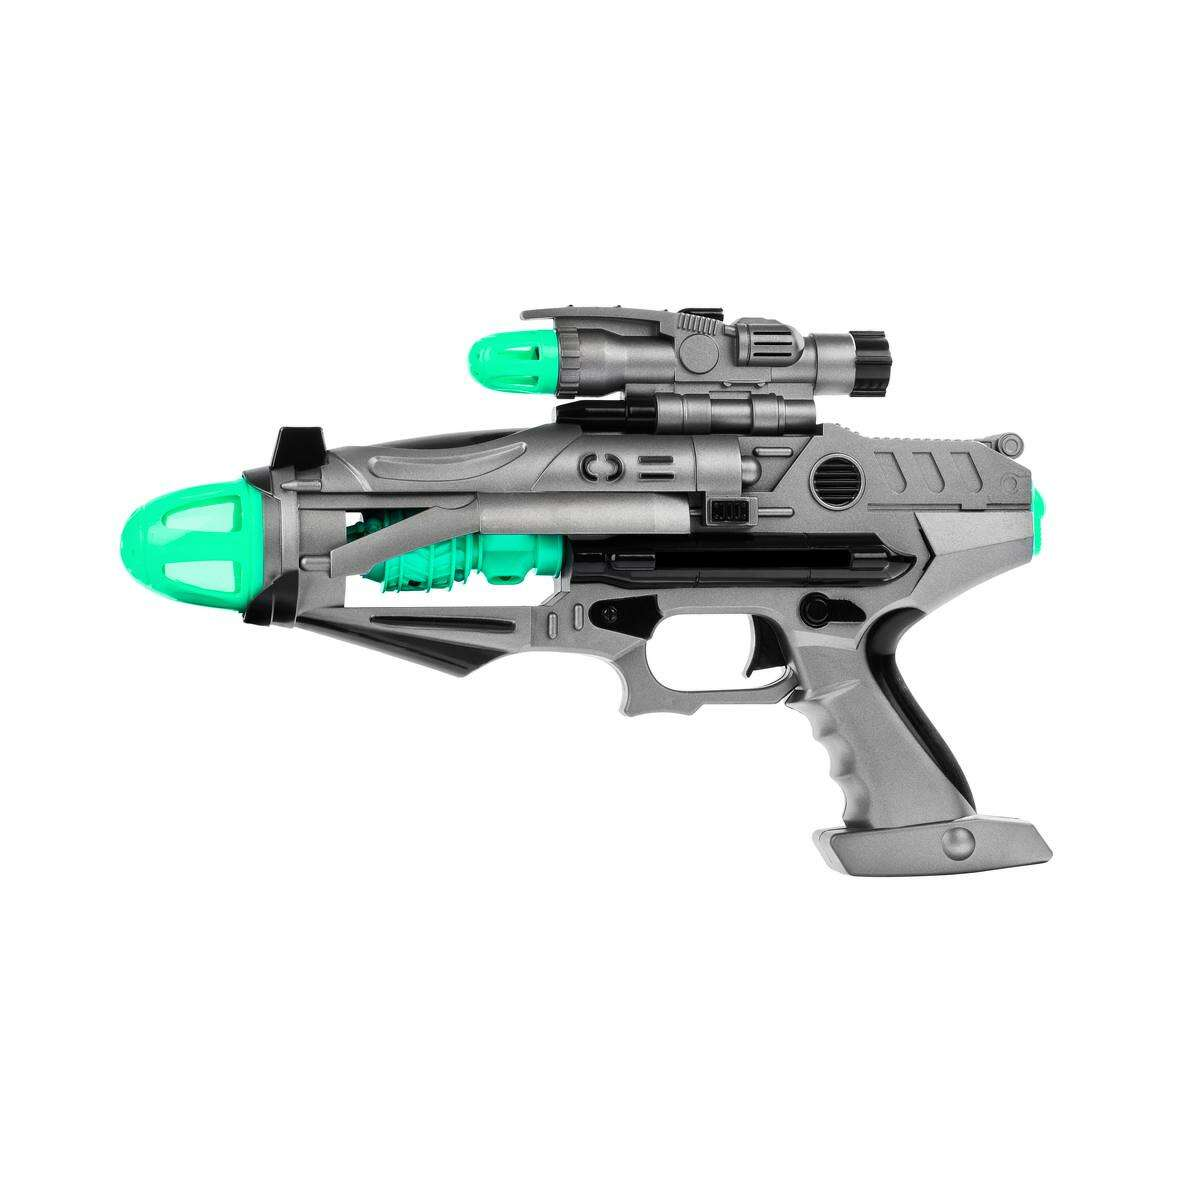 Loud toys, such as blaster guns like this one, were called out as a hazard in the 2019 Trouble in Toyland report.